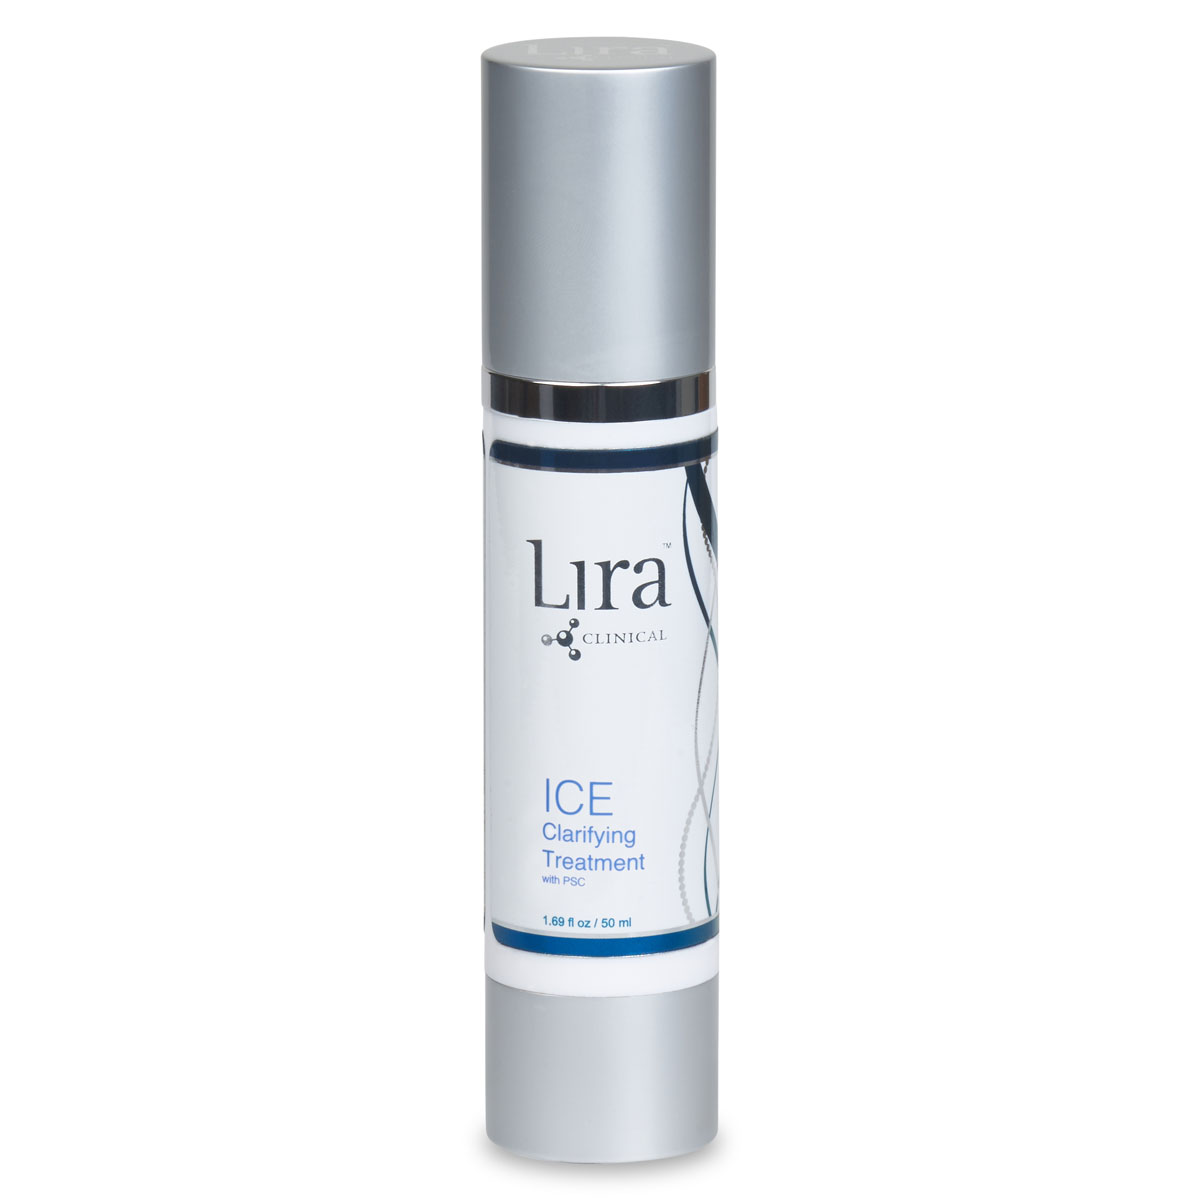 ICE Clarifying Treatment